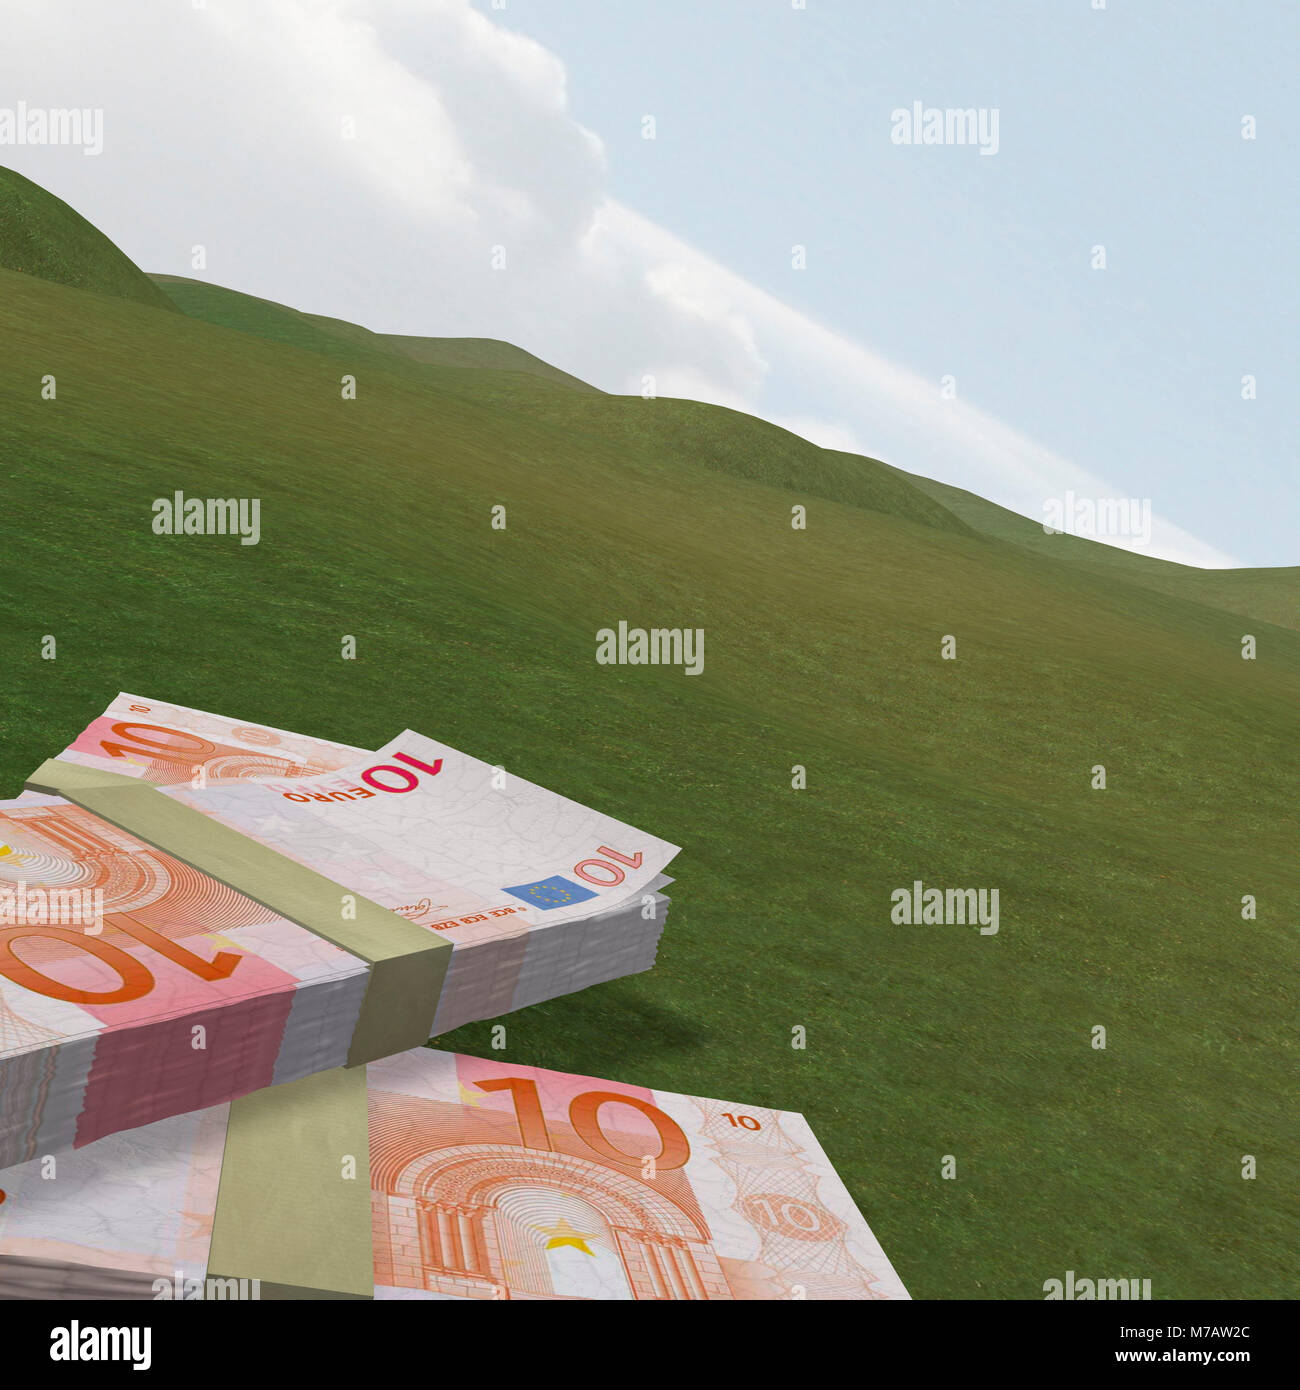 Close-up of wads of paper currencies - Stock Image